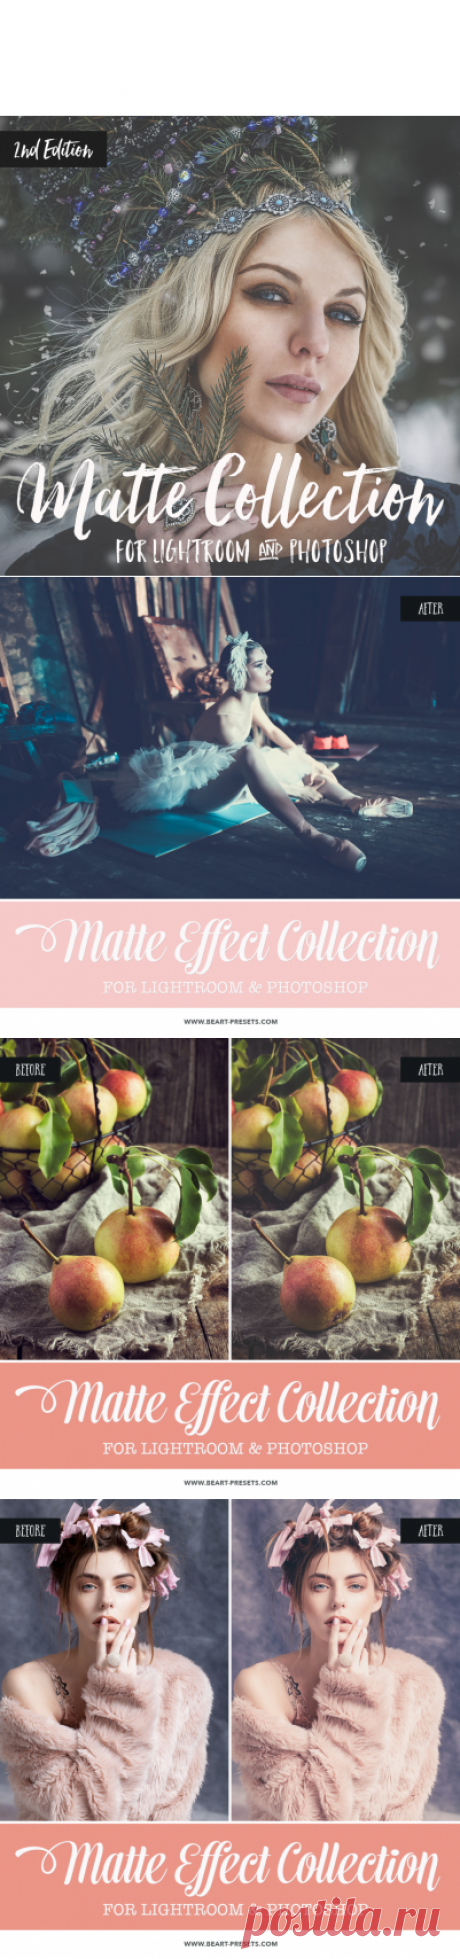 Matte Collection: Lightroom Presets, Photoshop Actions and ACR Presets by BeArt Presets | the best preseta for processing of photos